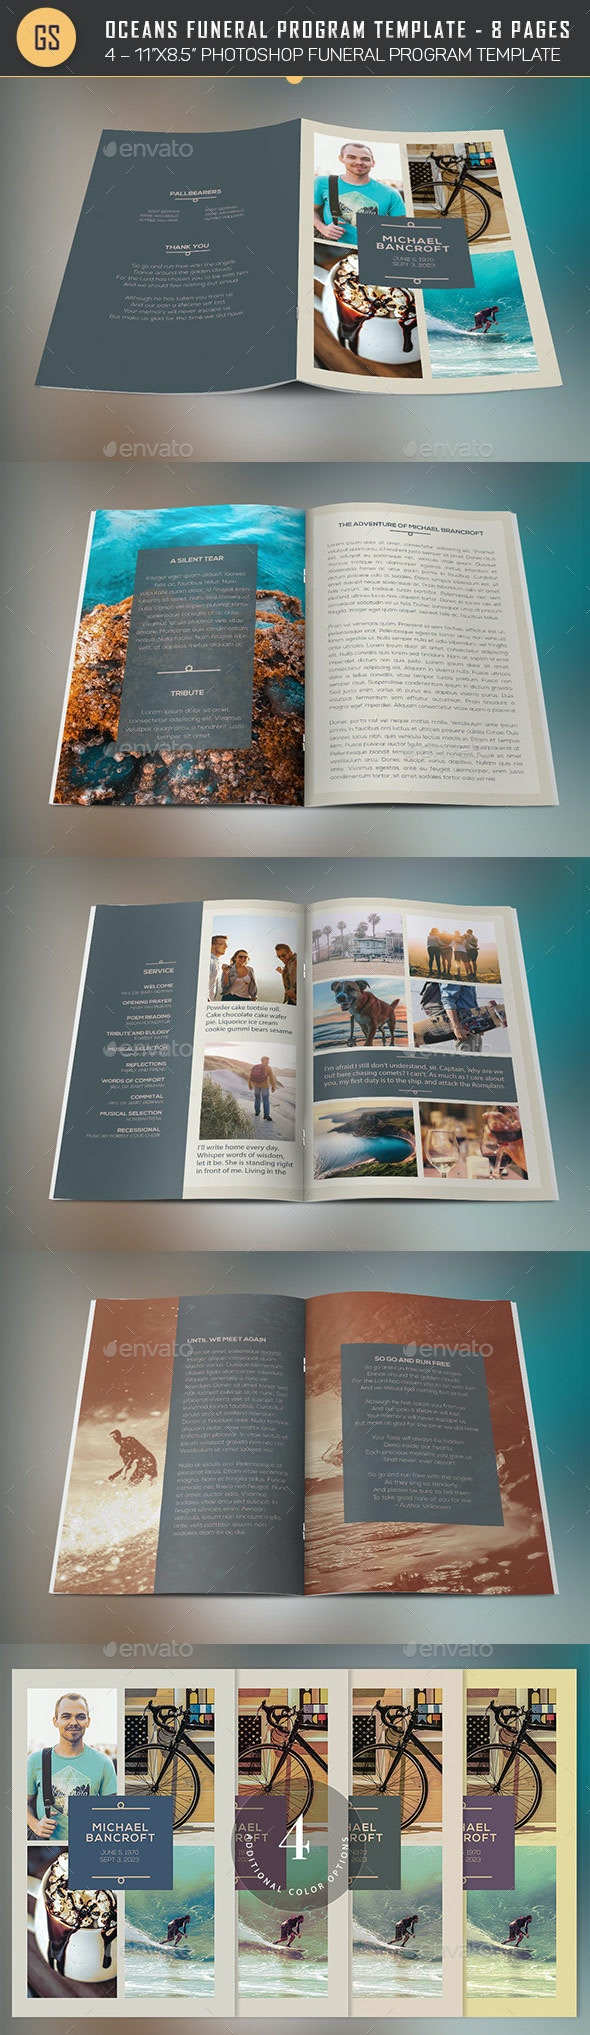 Oceans Funeral Program Template - 8 Pages - Brochures Print Templates